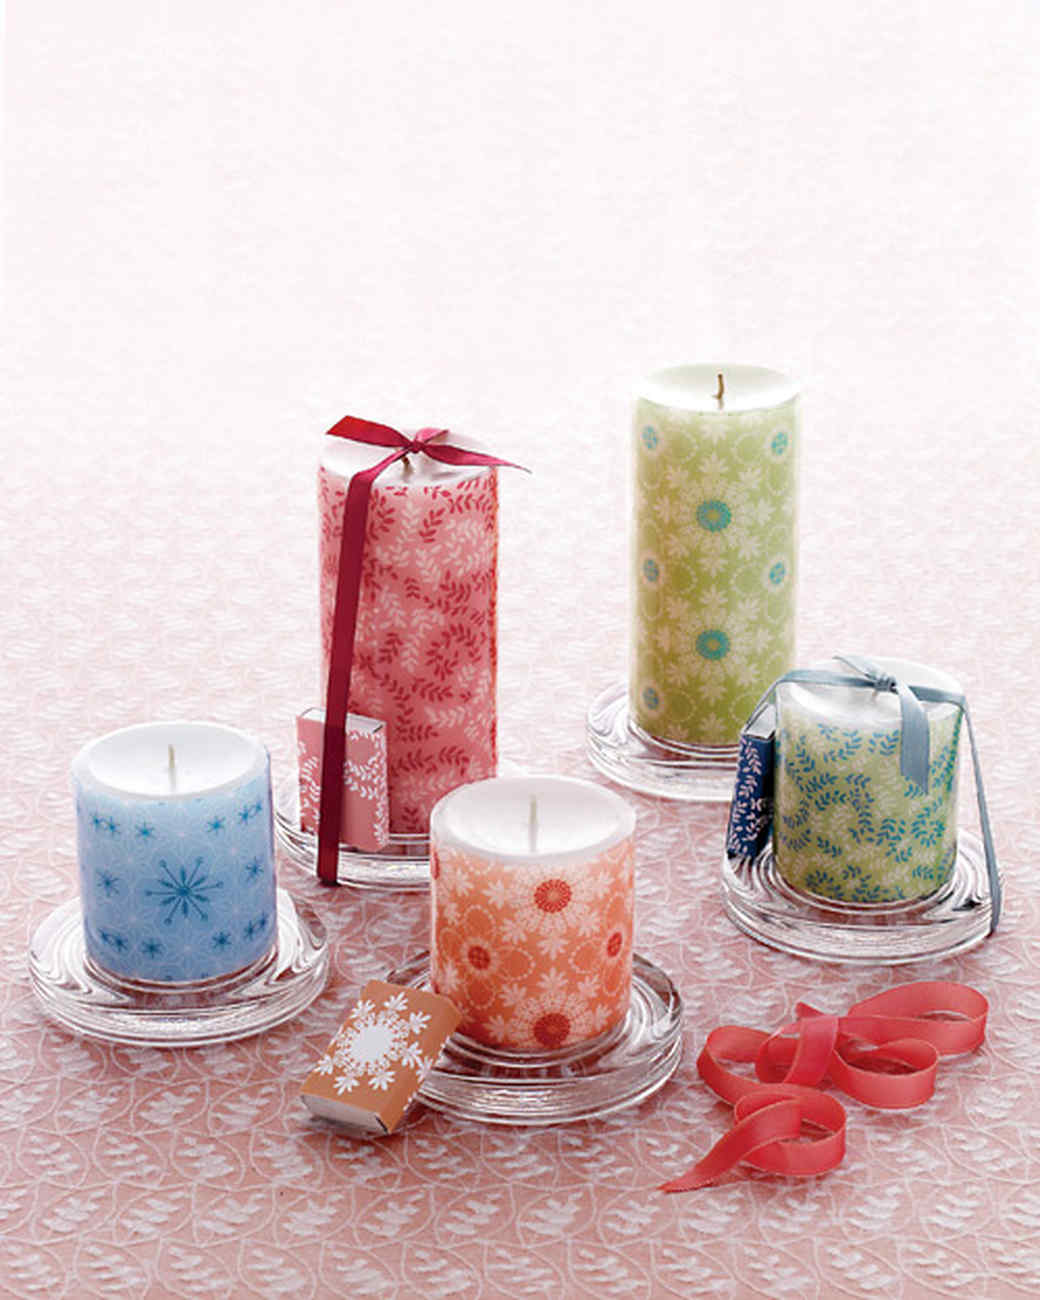 mld105316_1209_decorative_candles.jpg